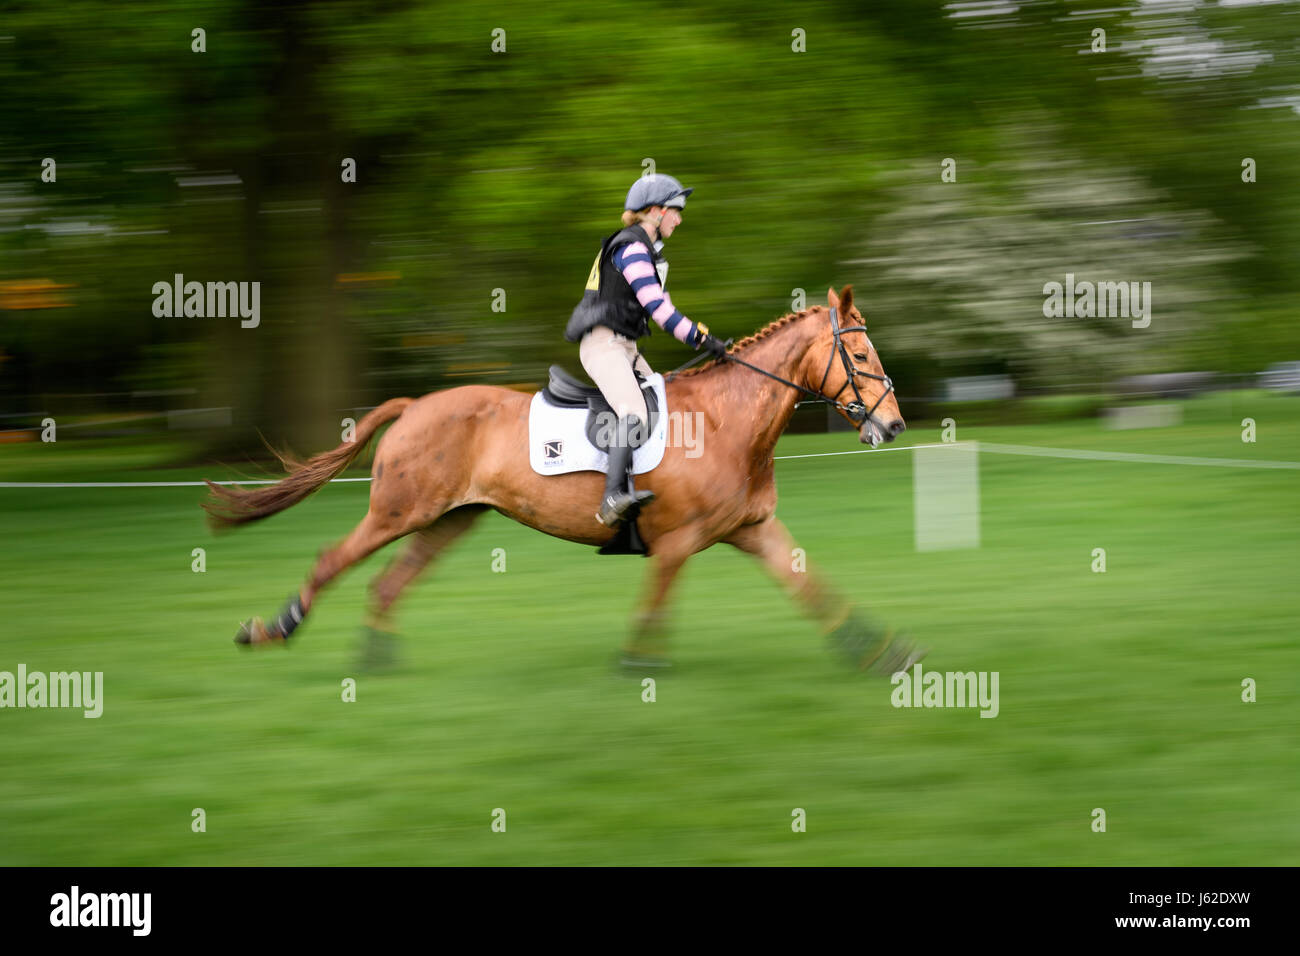 Rockingham Castle grounds, Corby, England. 19th May 2017.  Greta Mason and her horse Ballyard Caitriona gallop past Stock Photo